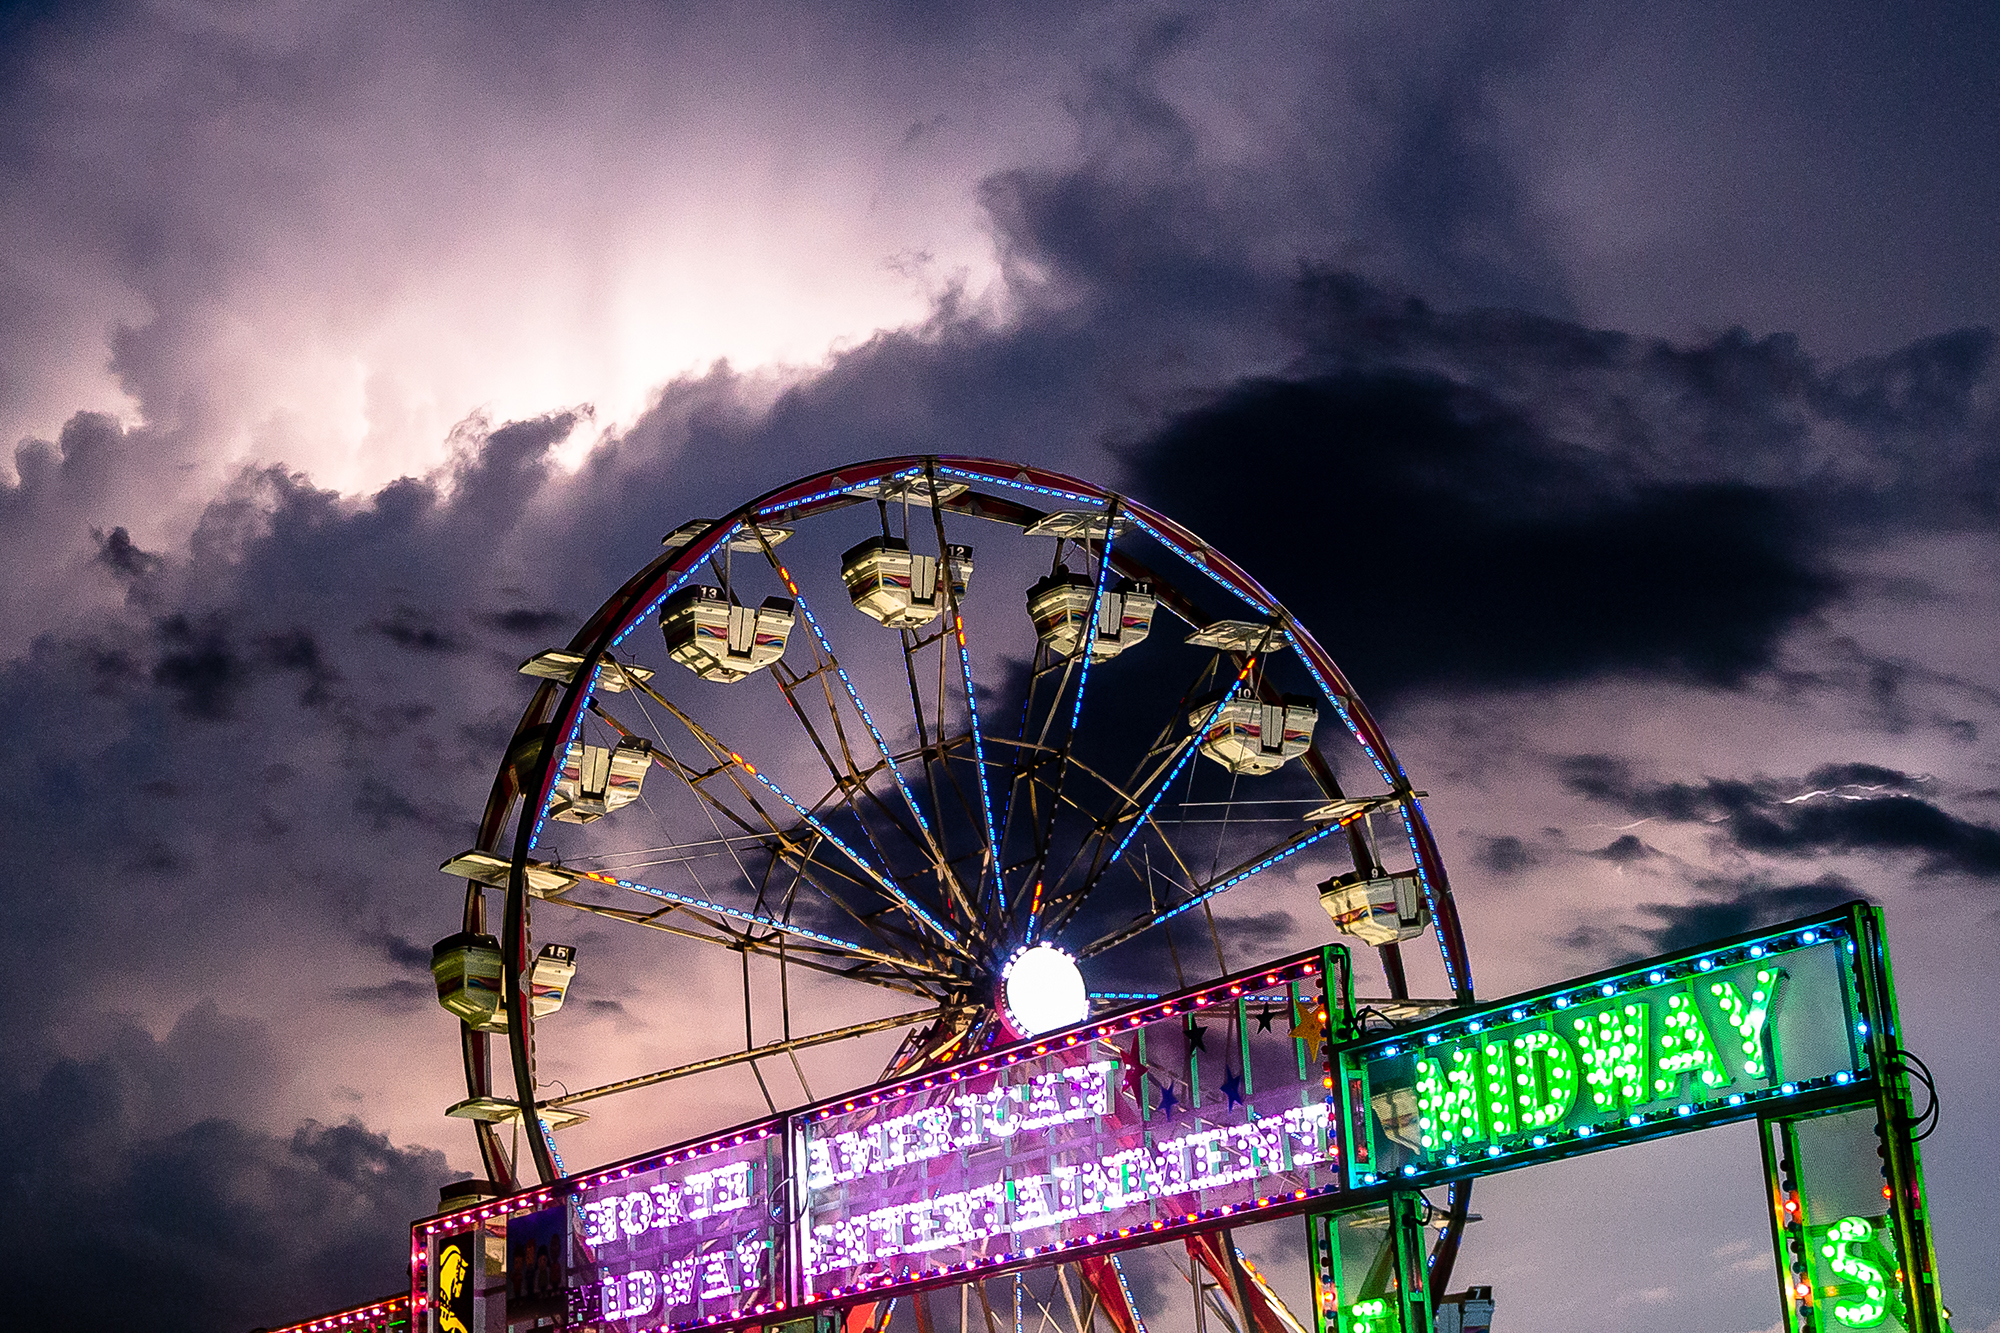 Lightning fills the sky as a backdrop to the Carnival Midway during the Illinois State Fair at Illinois State Fairgrounds, Thursday, Aug. 16, 2018, in Springfield, Ill. [Justin L. Fowler/The State Journal-Register]